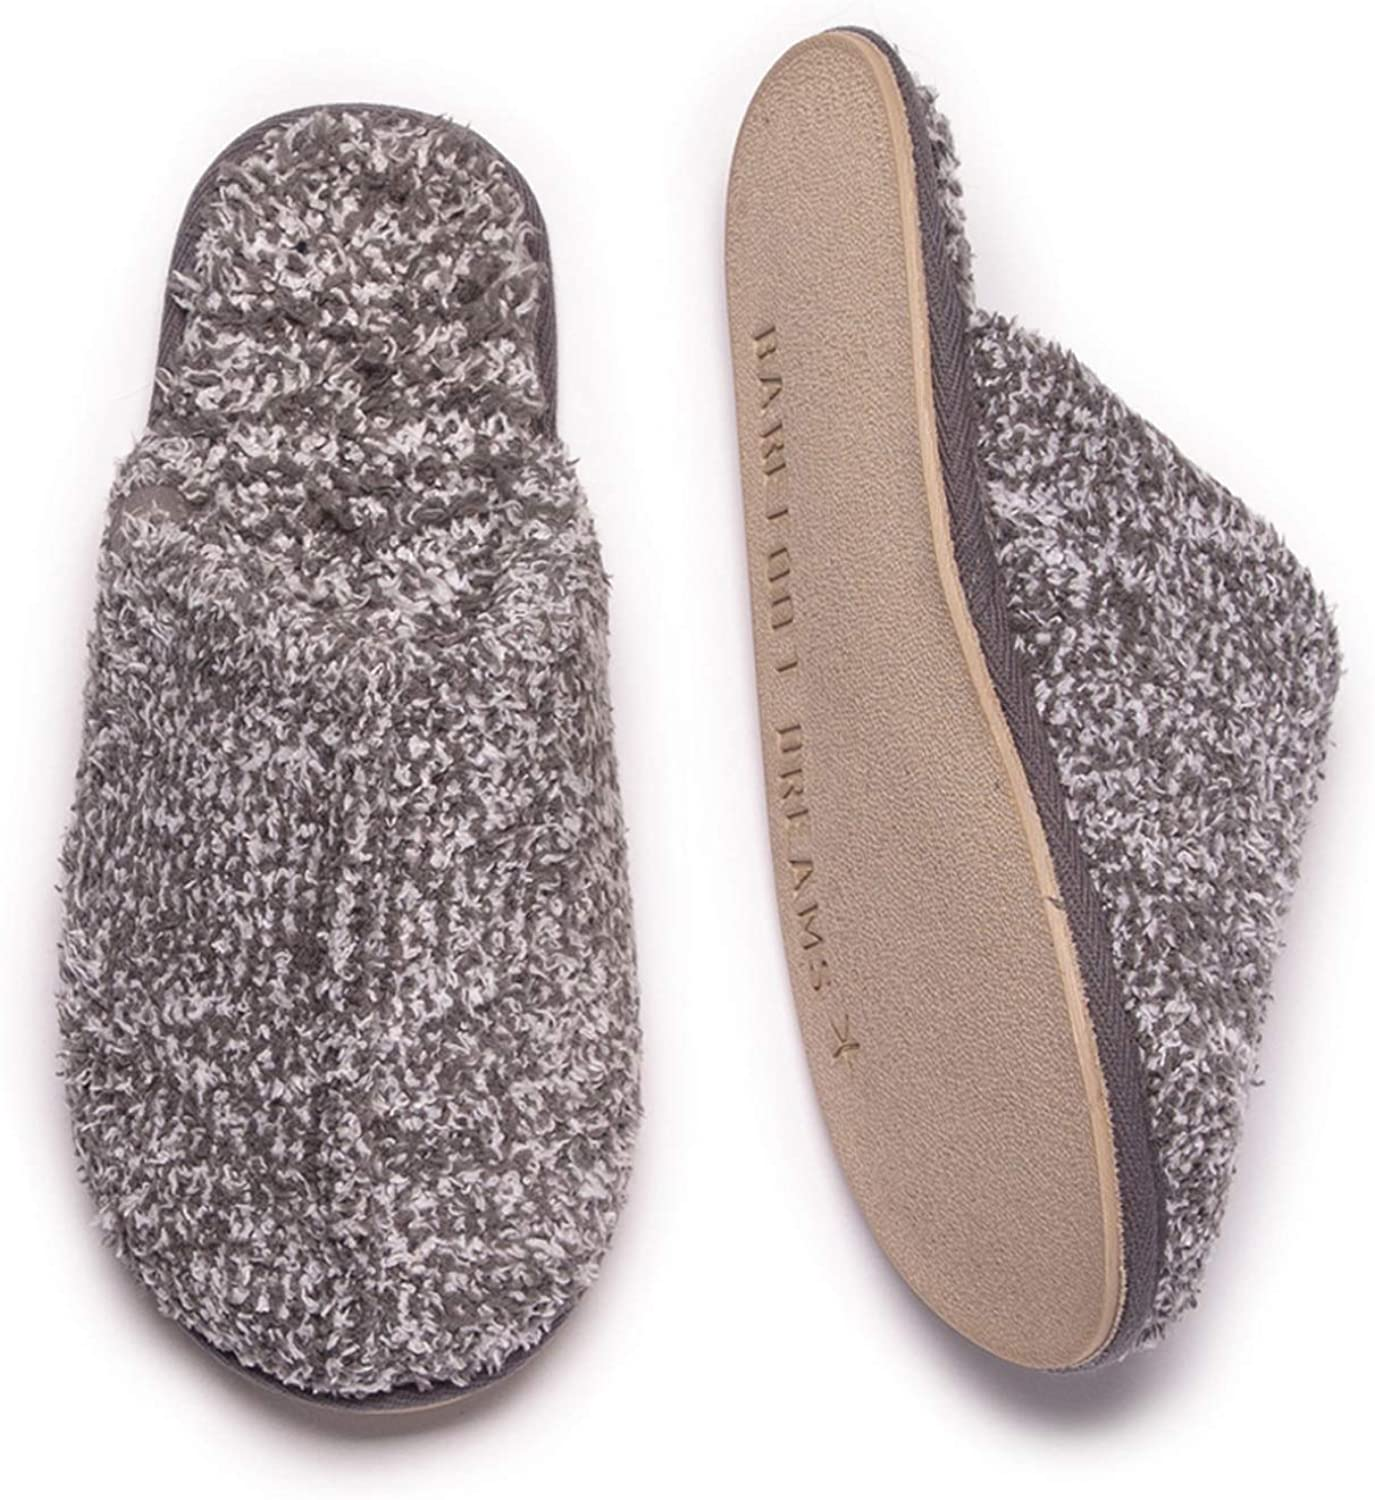 Barefoot Dreams CozyChic Cozy Slippers for Men, Open-Back House Slippers